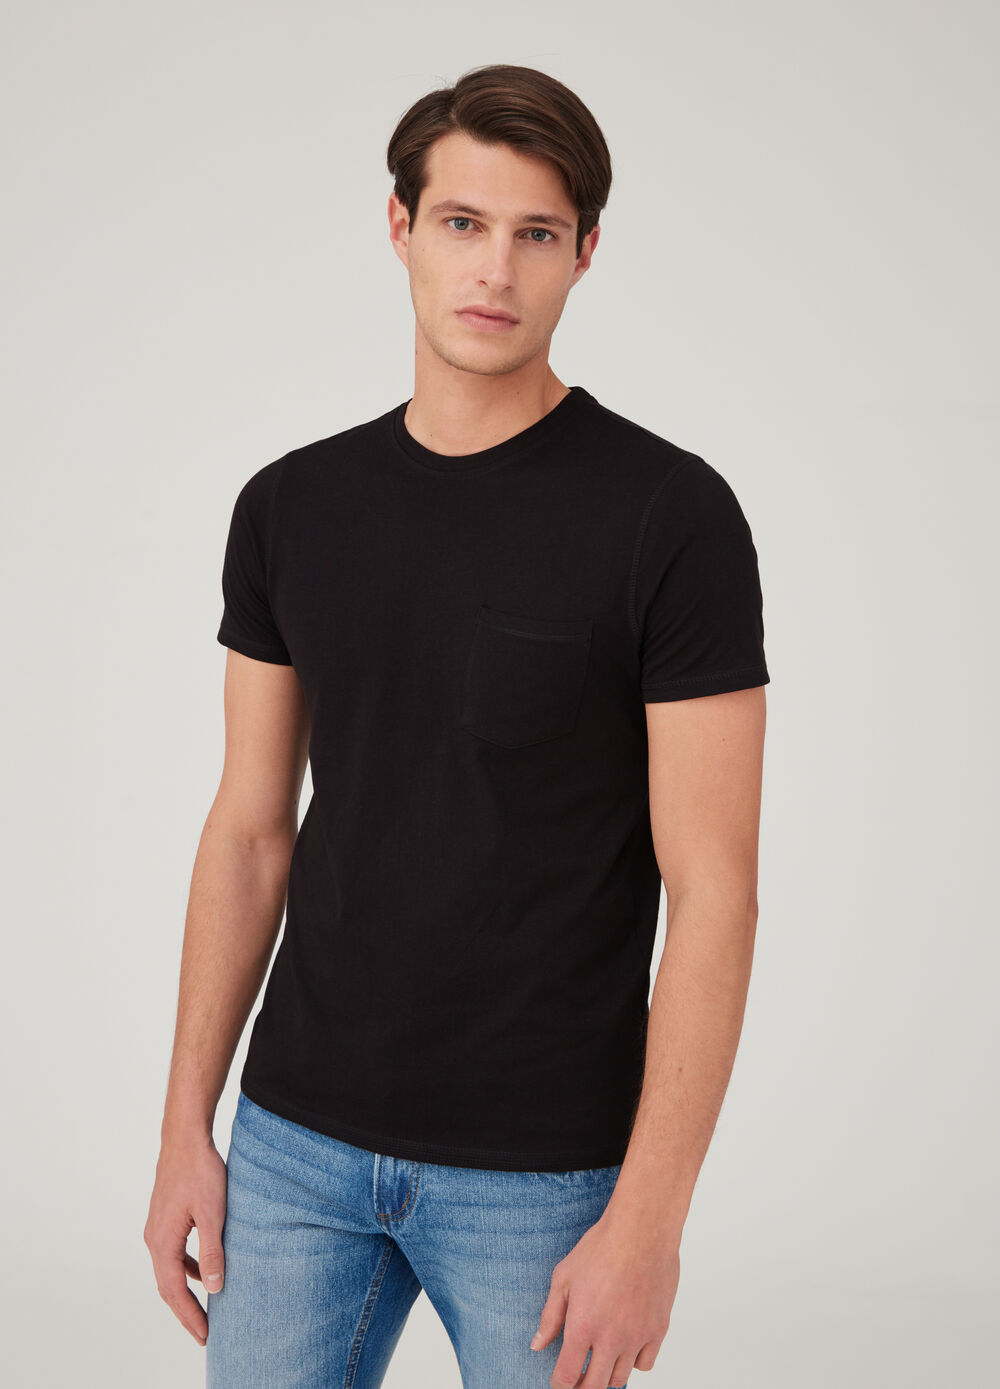 T-shirt biocotton con taschino